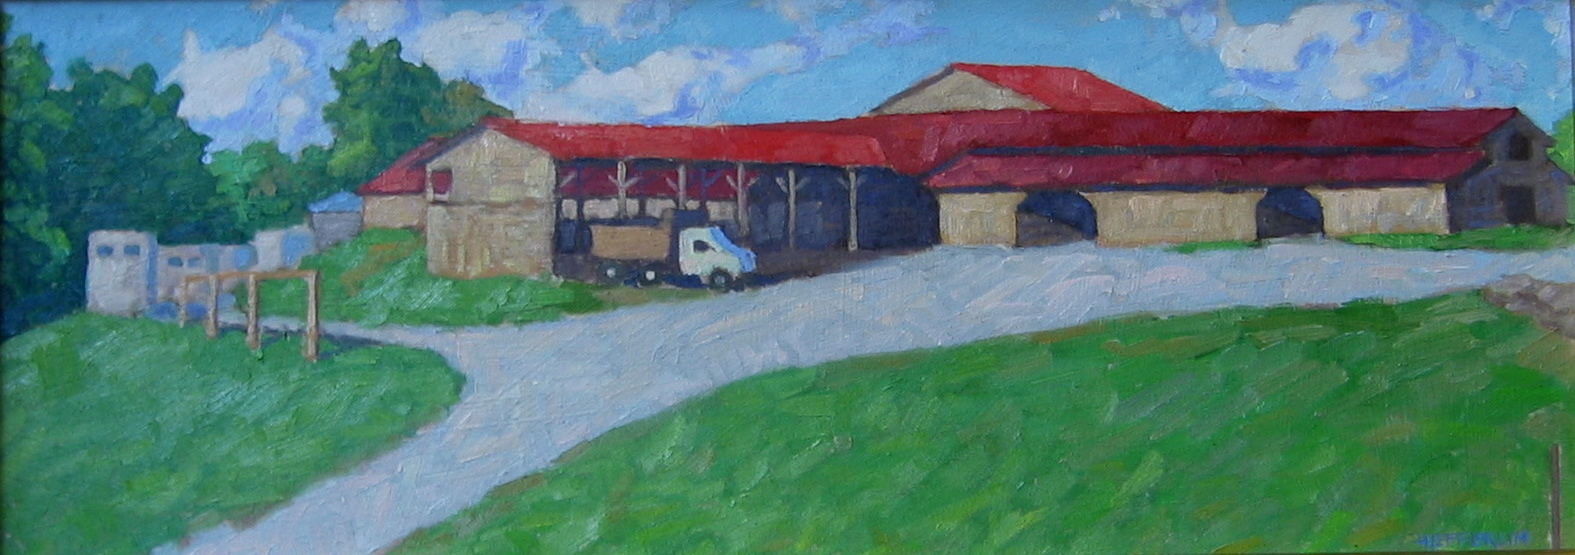 Sunset at the Stables by  Melissa Hefferlin - Masterpiece Online